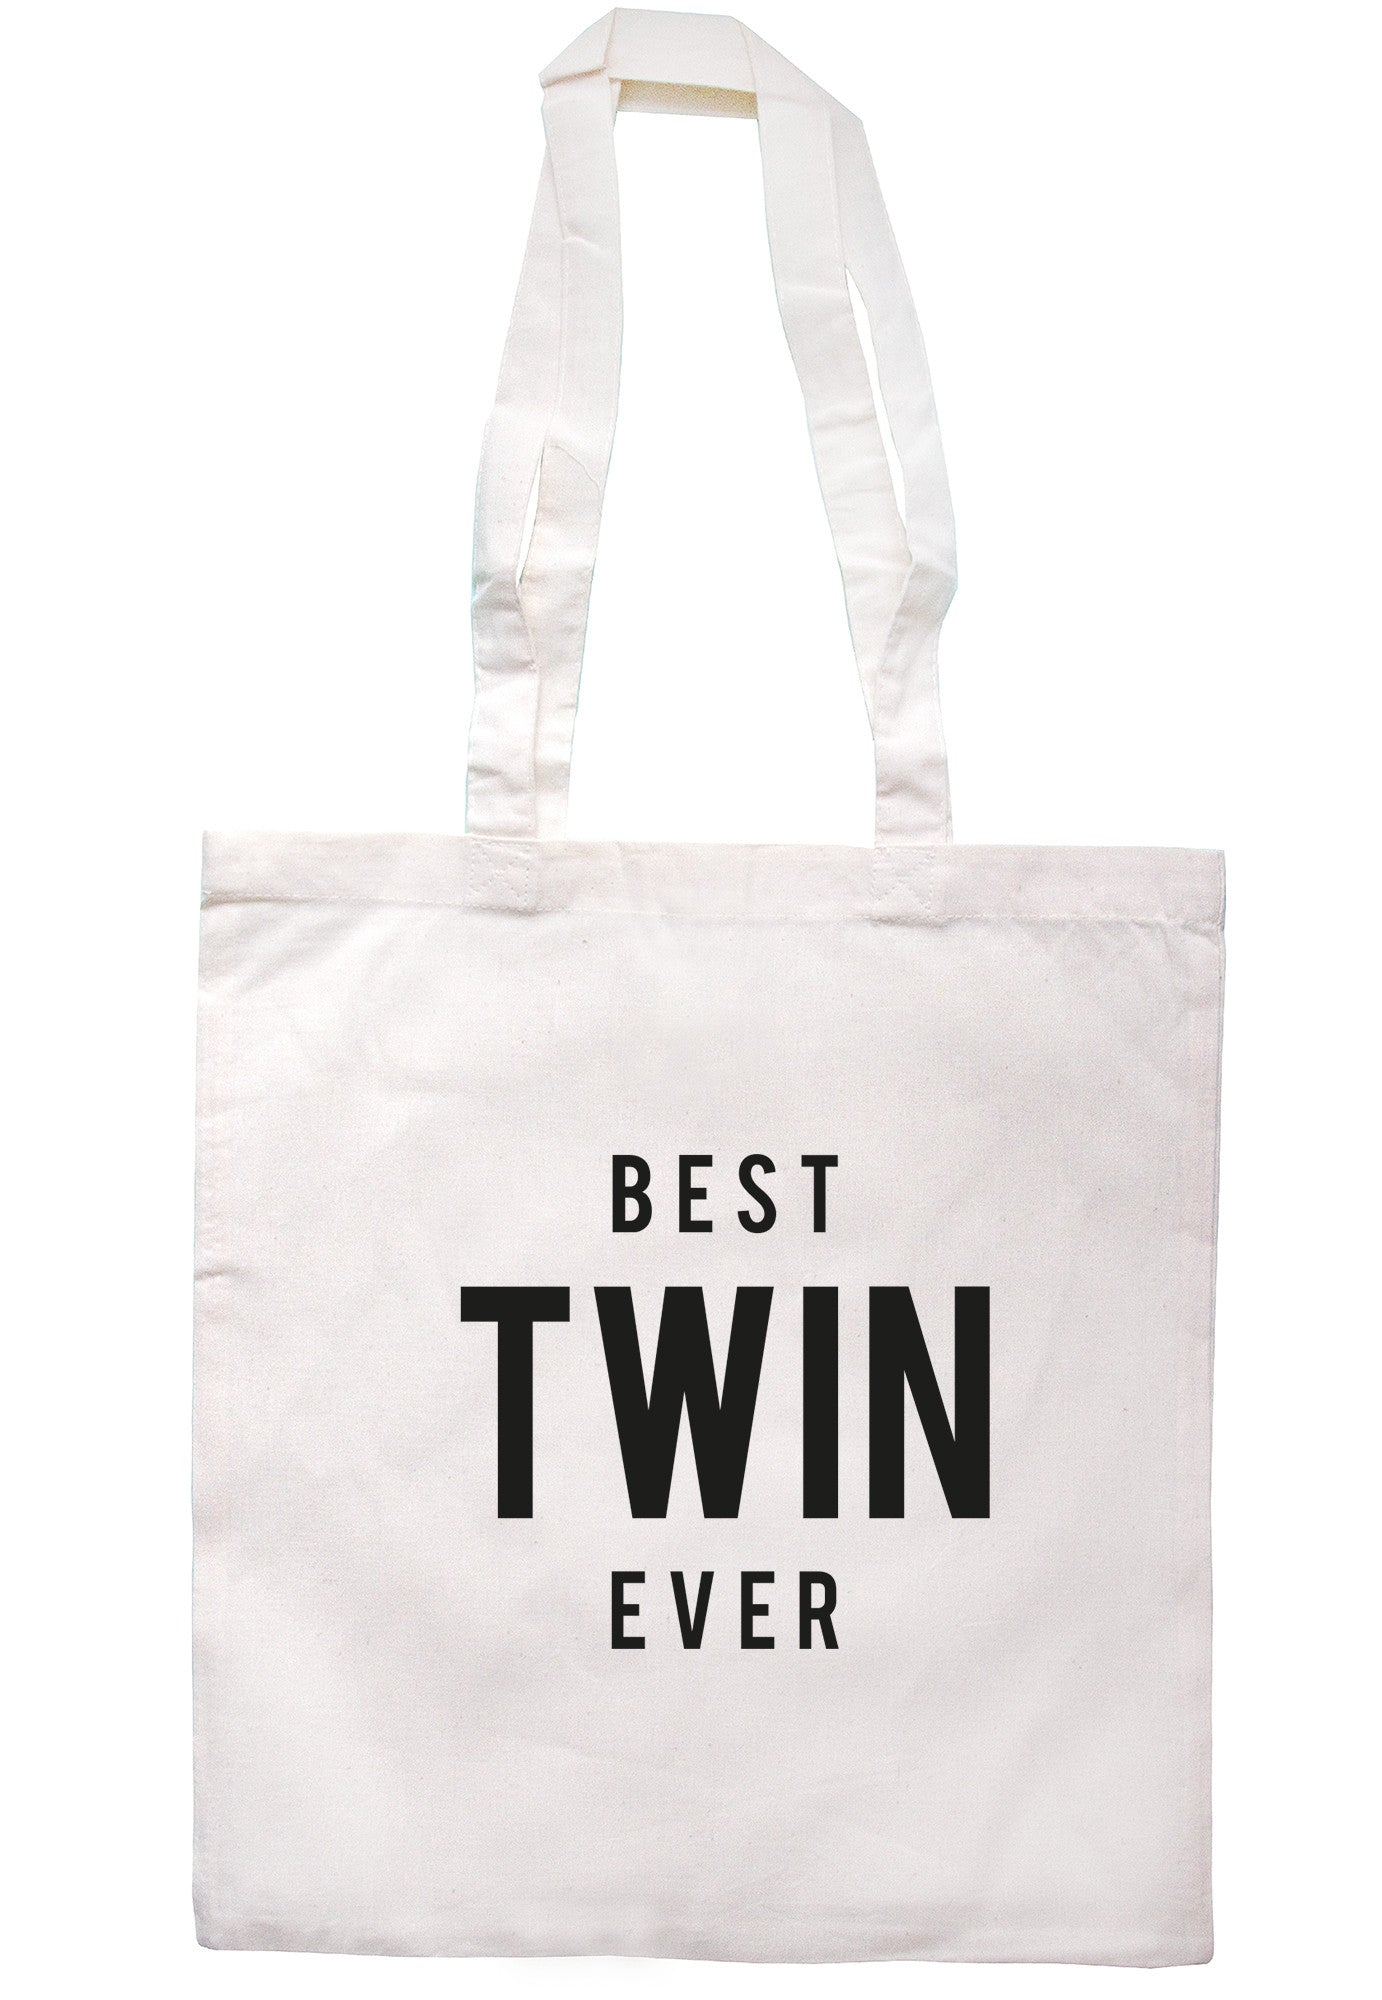 Best Twin Ever Tote Bag TB1277 - Illustrated Identity Ltd.